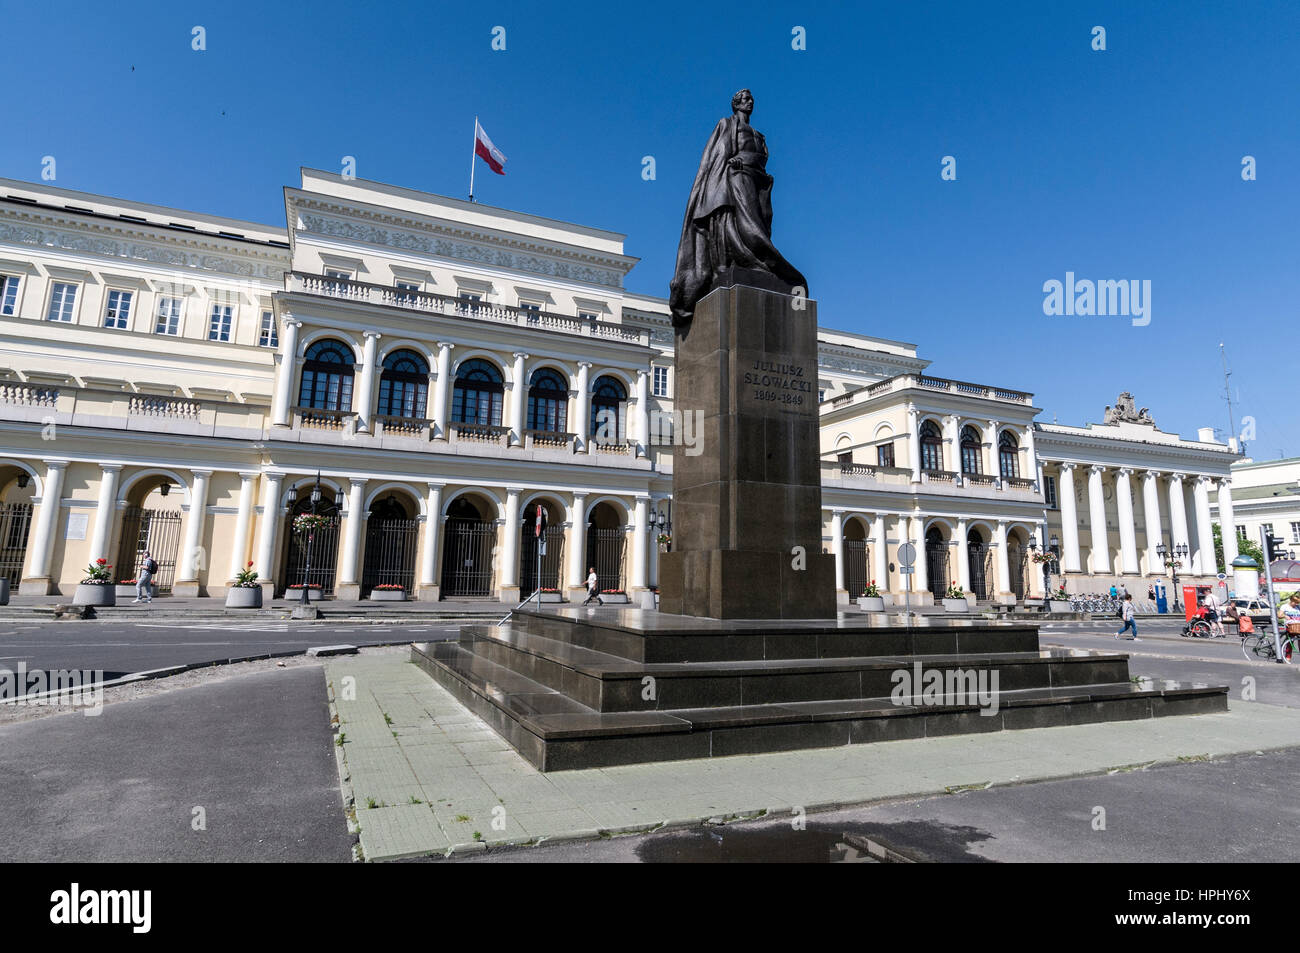 A monument of the Polish poet, Juliusz Slowacki in front of the Palace of the Ministry of Revenues and Treasury Stock Photo